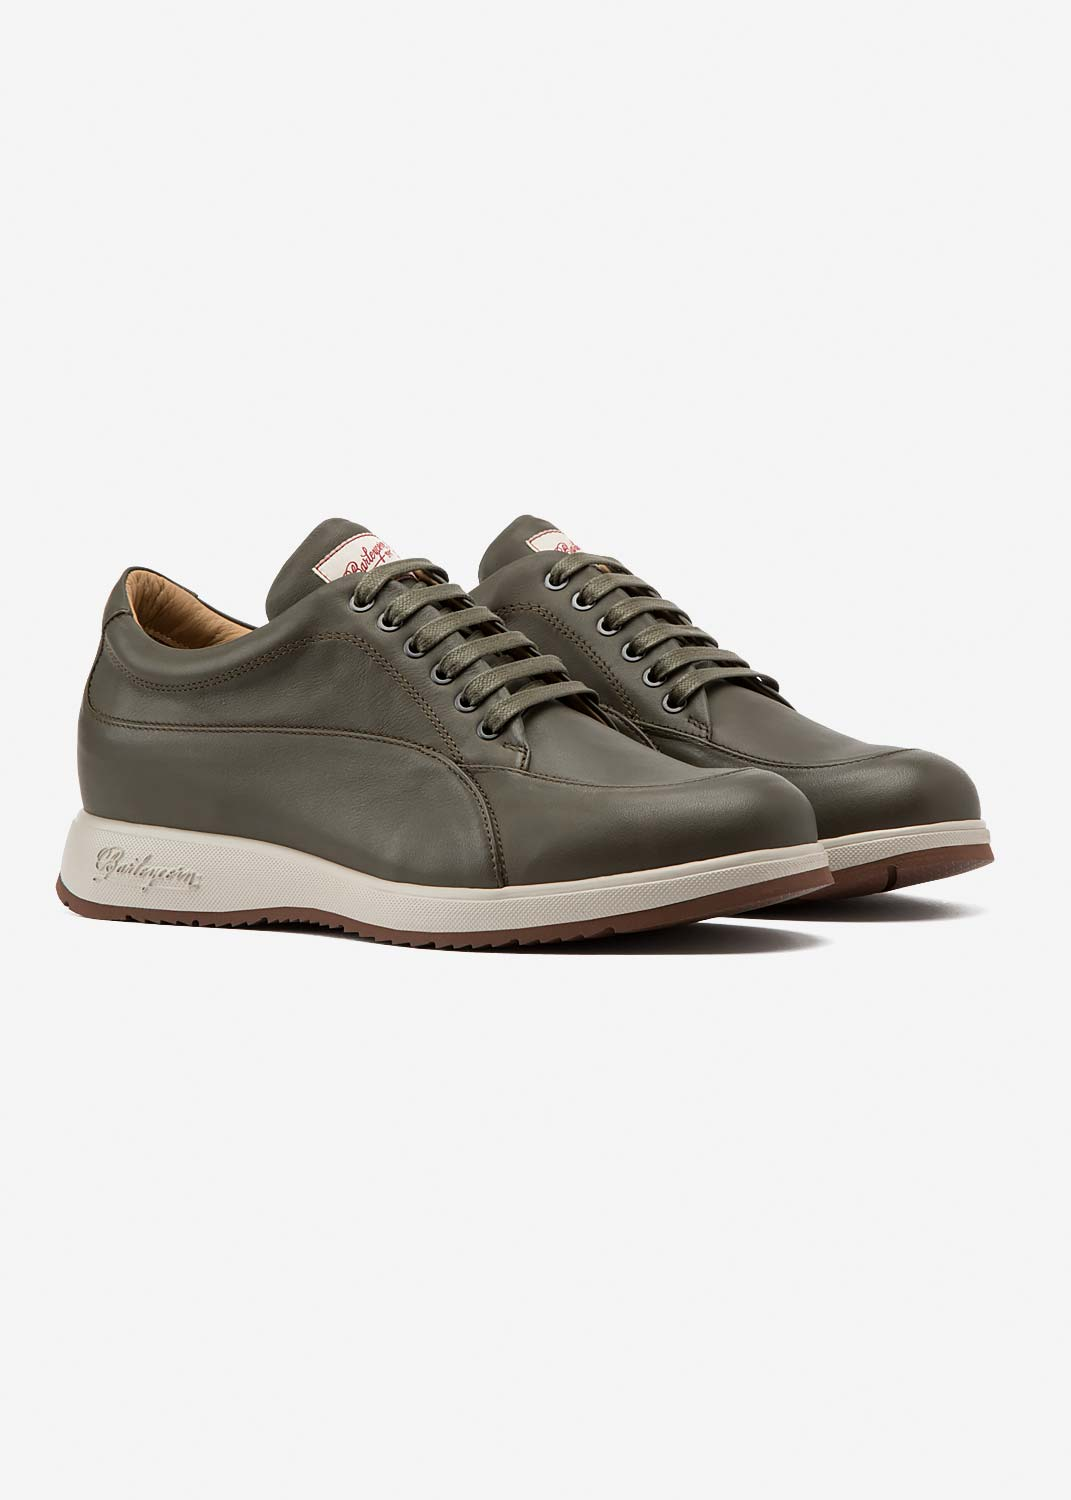 New Classic Army Leather